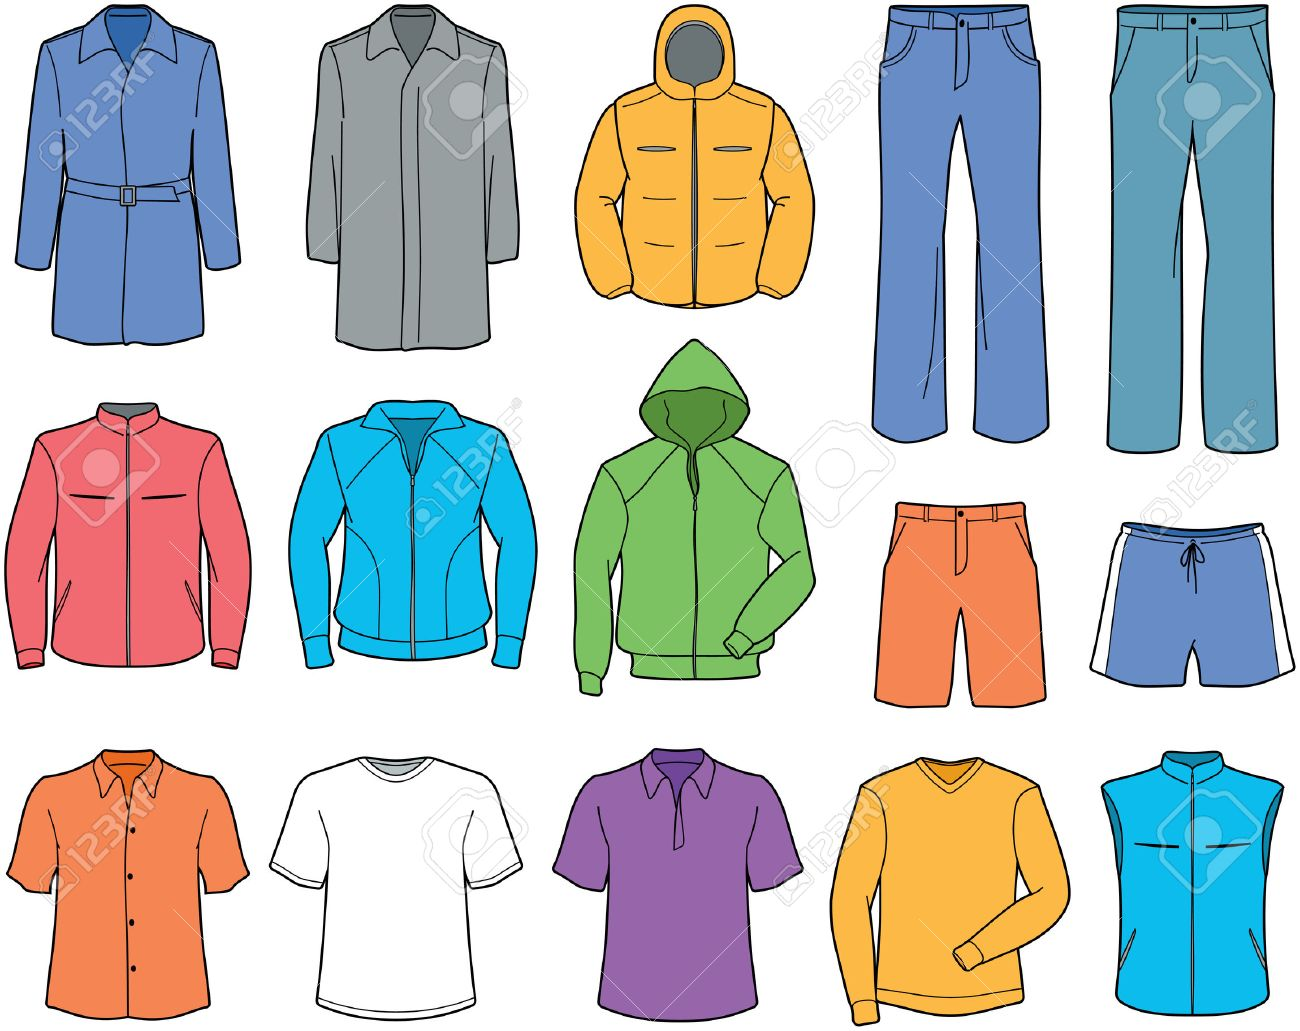 Men casual clothes and sportswear illustration.